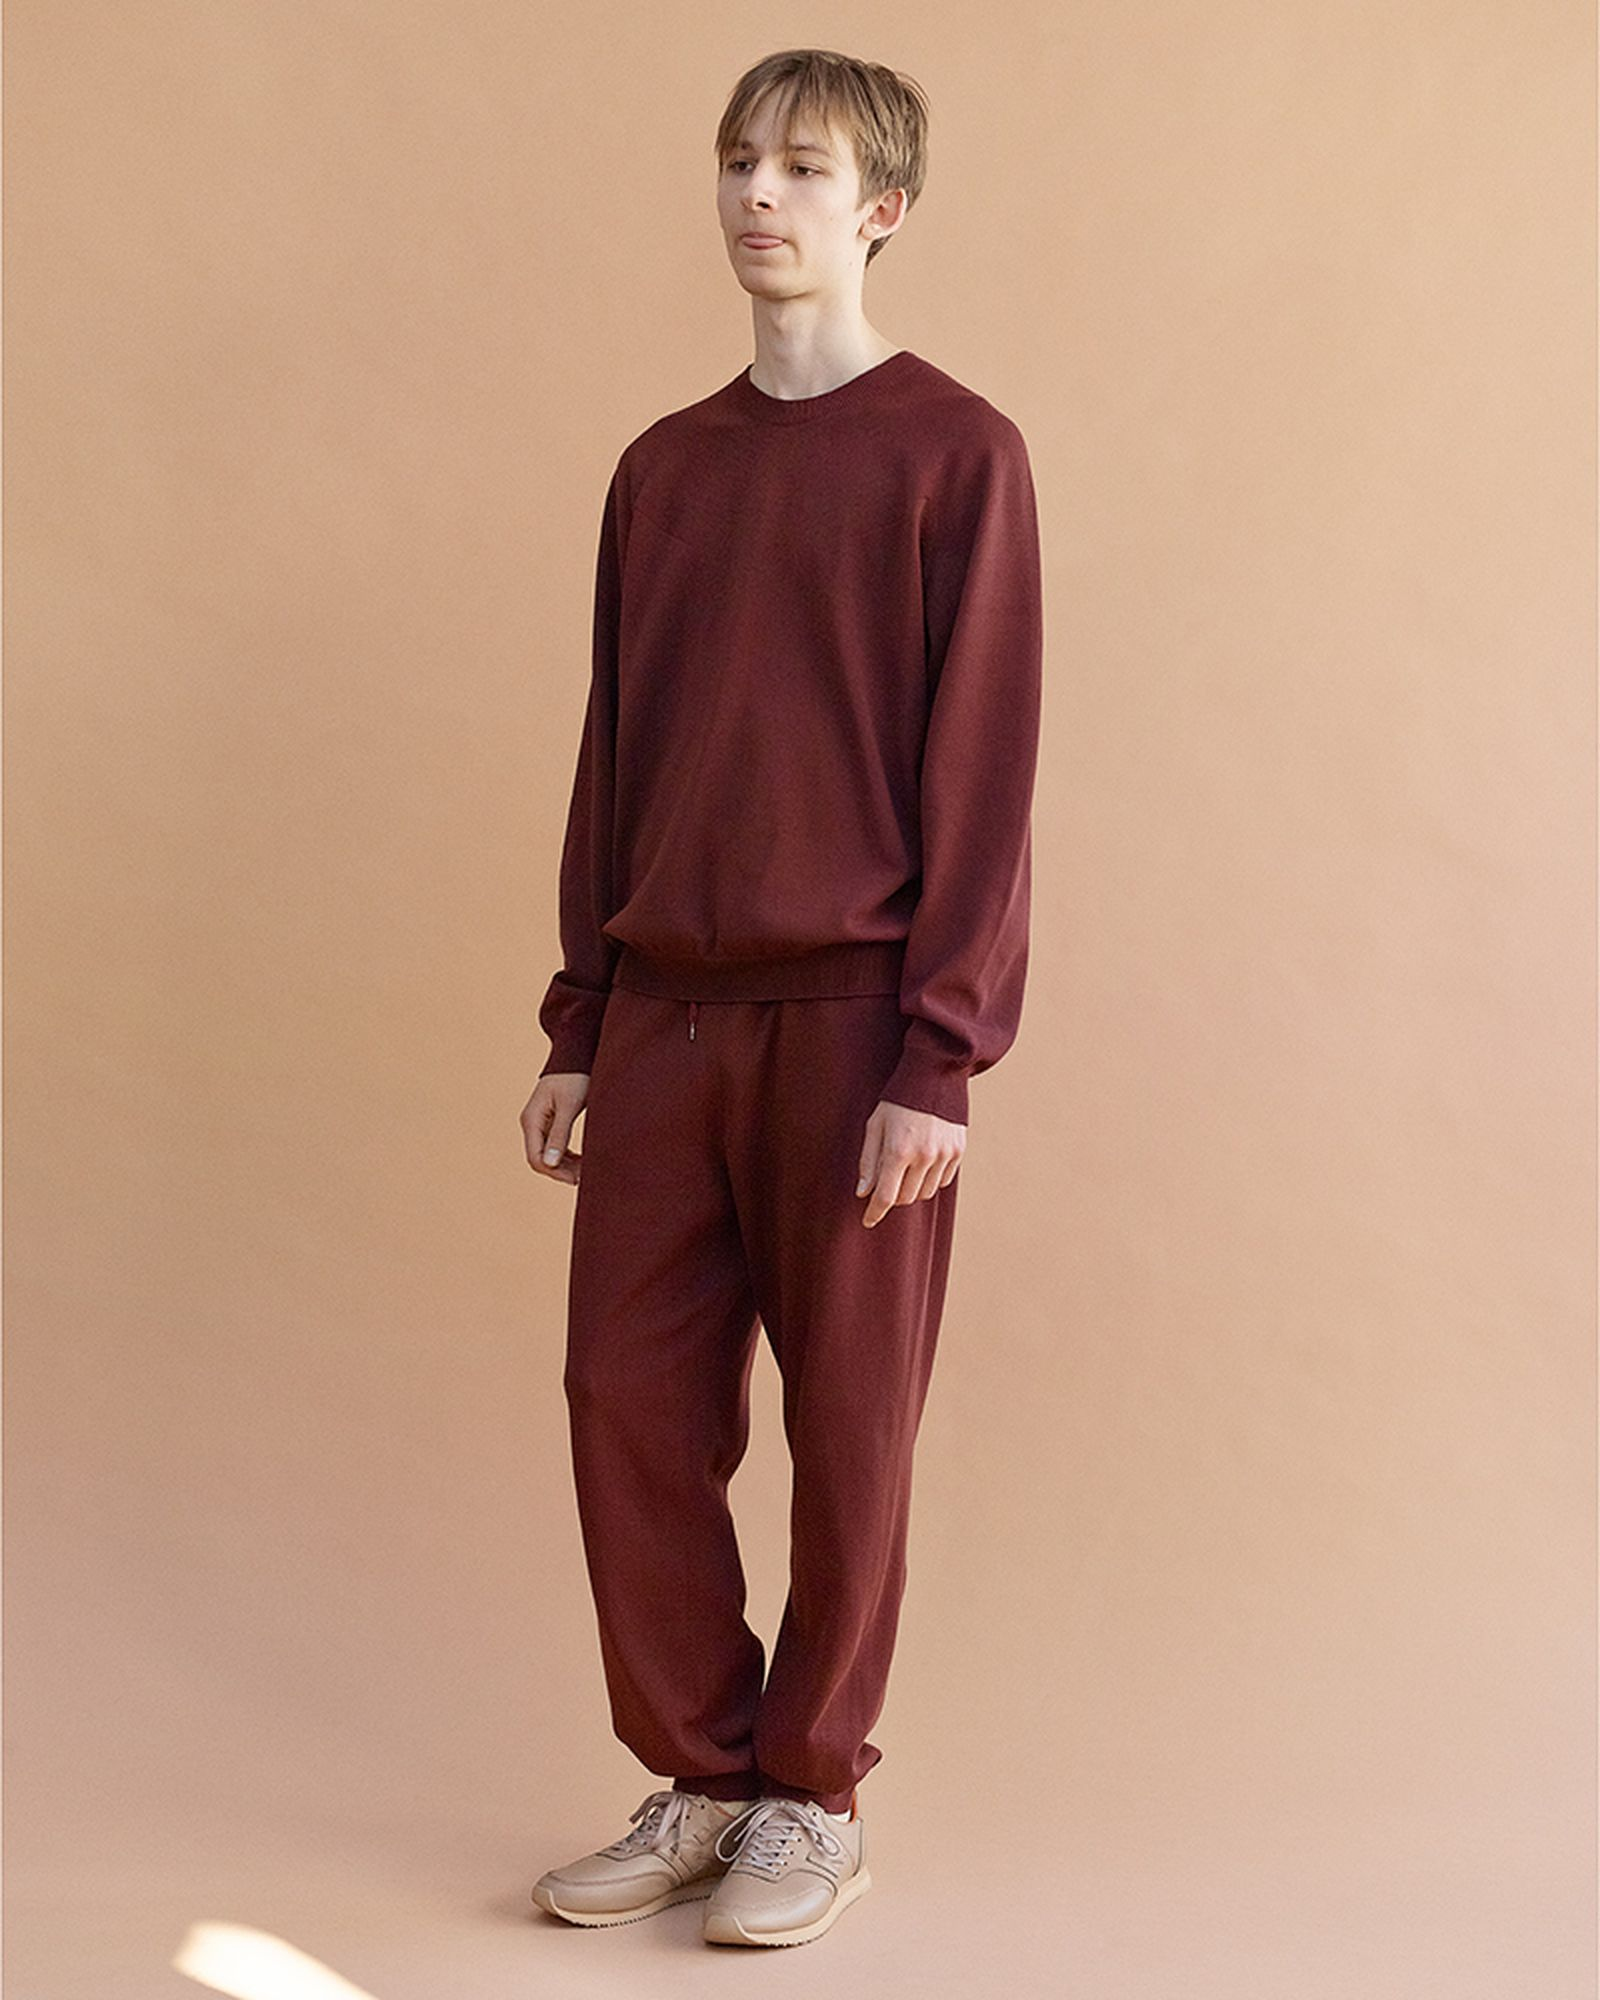 On model shot of a sweatshirt and sweatpants by Auralee